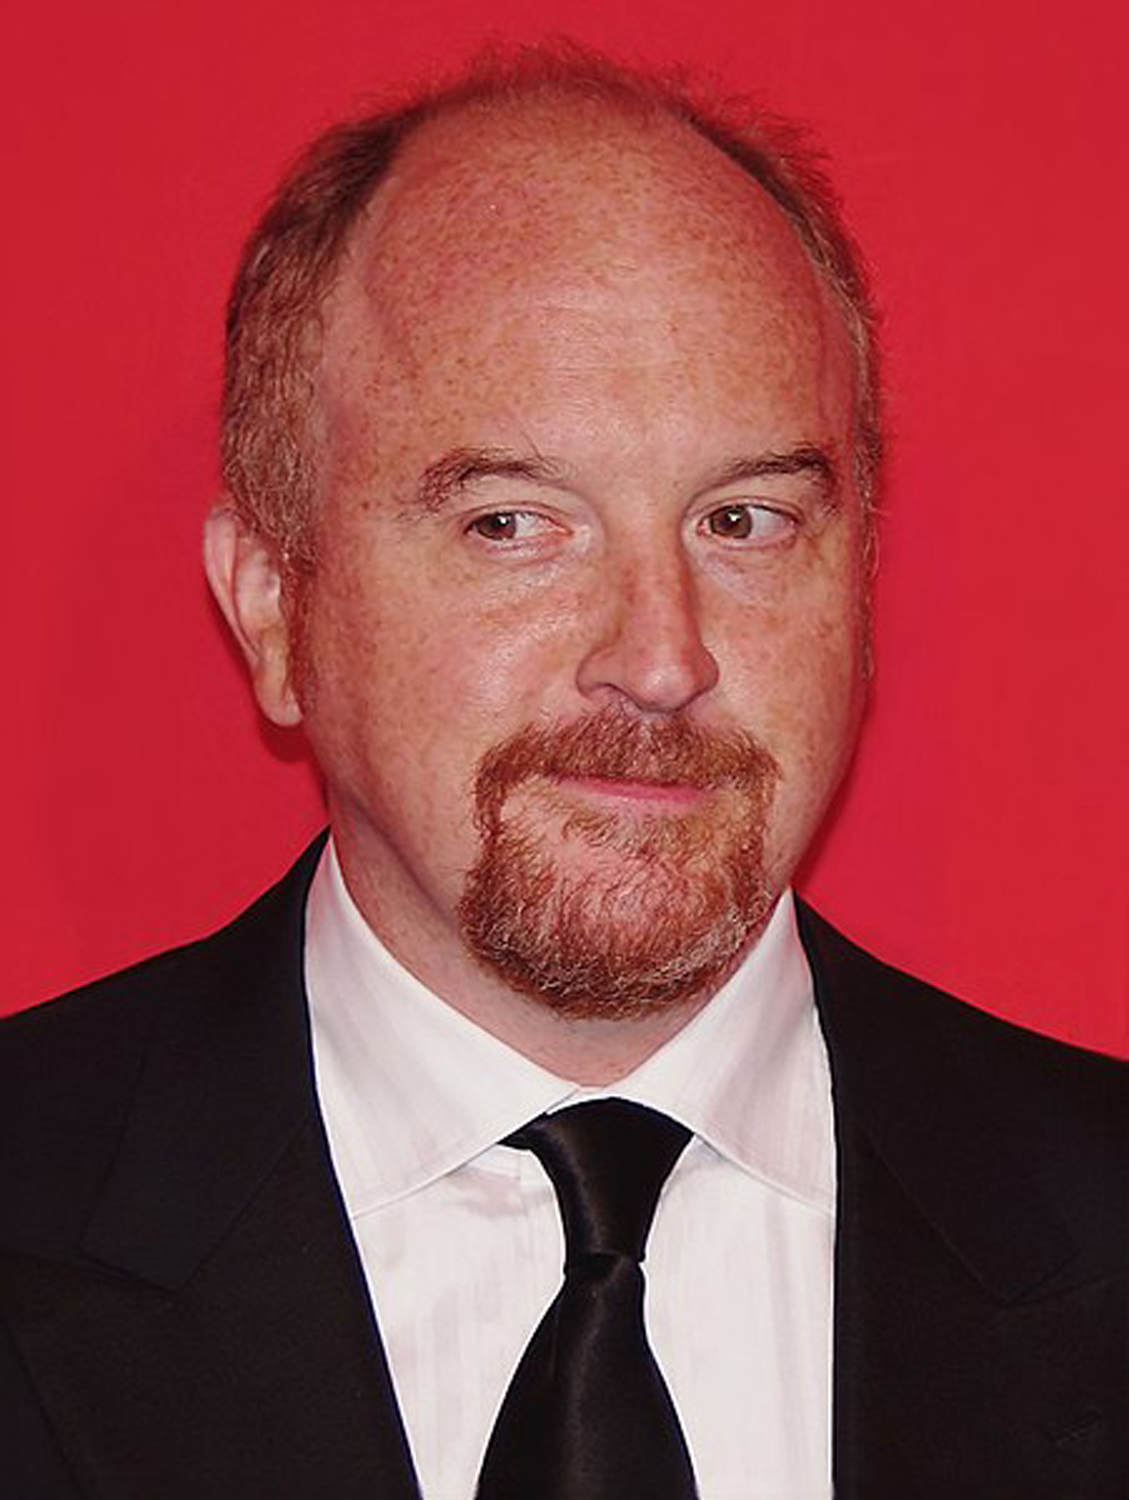 Controversial comedian Louis C.K. performed a three-show tour at Pittsburgh Improv in Homestead this past weekend.